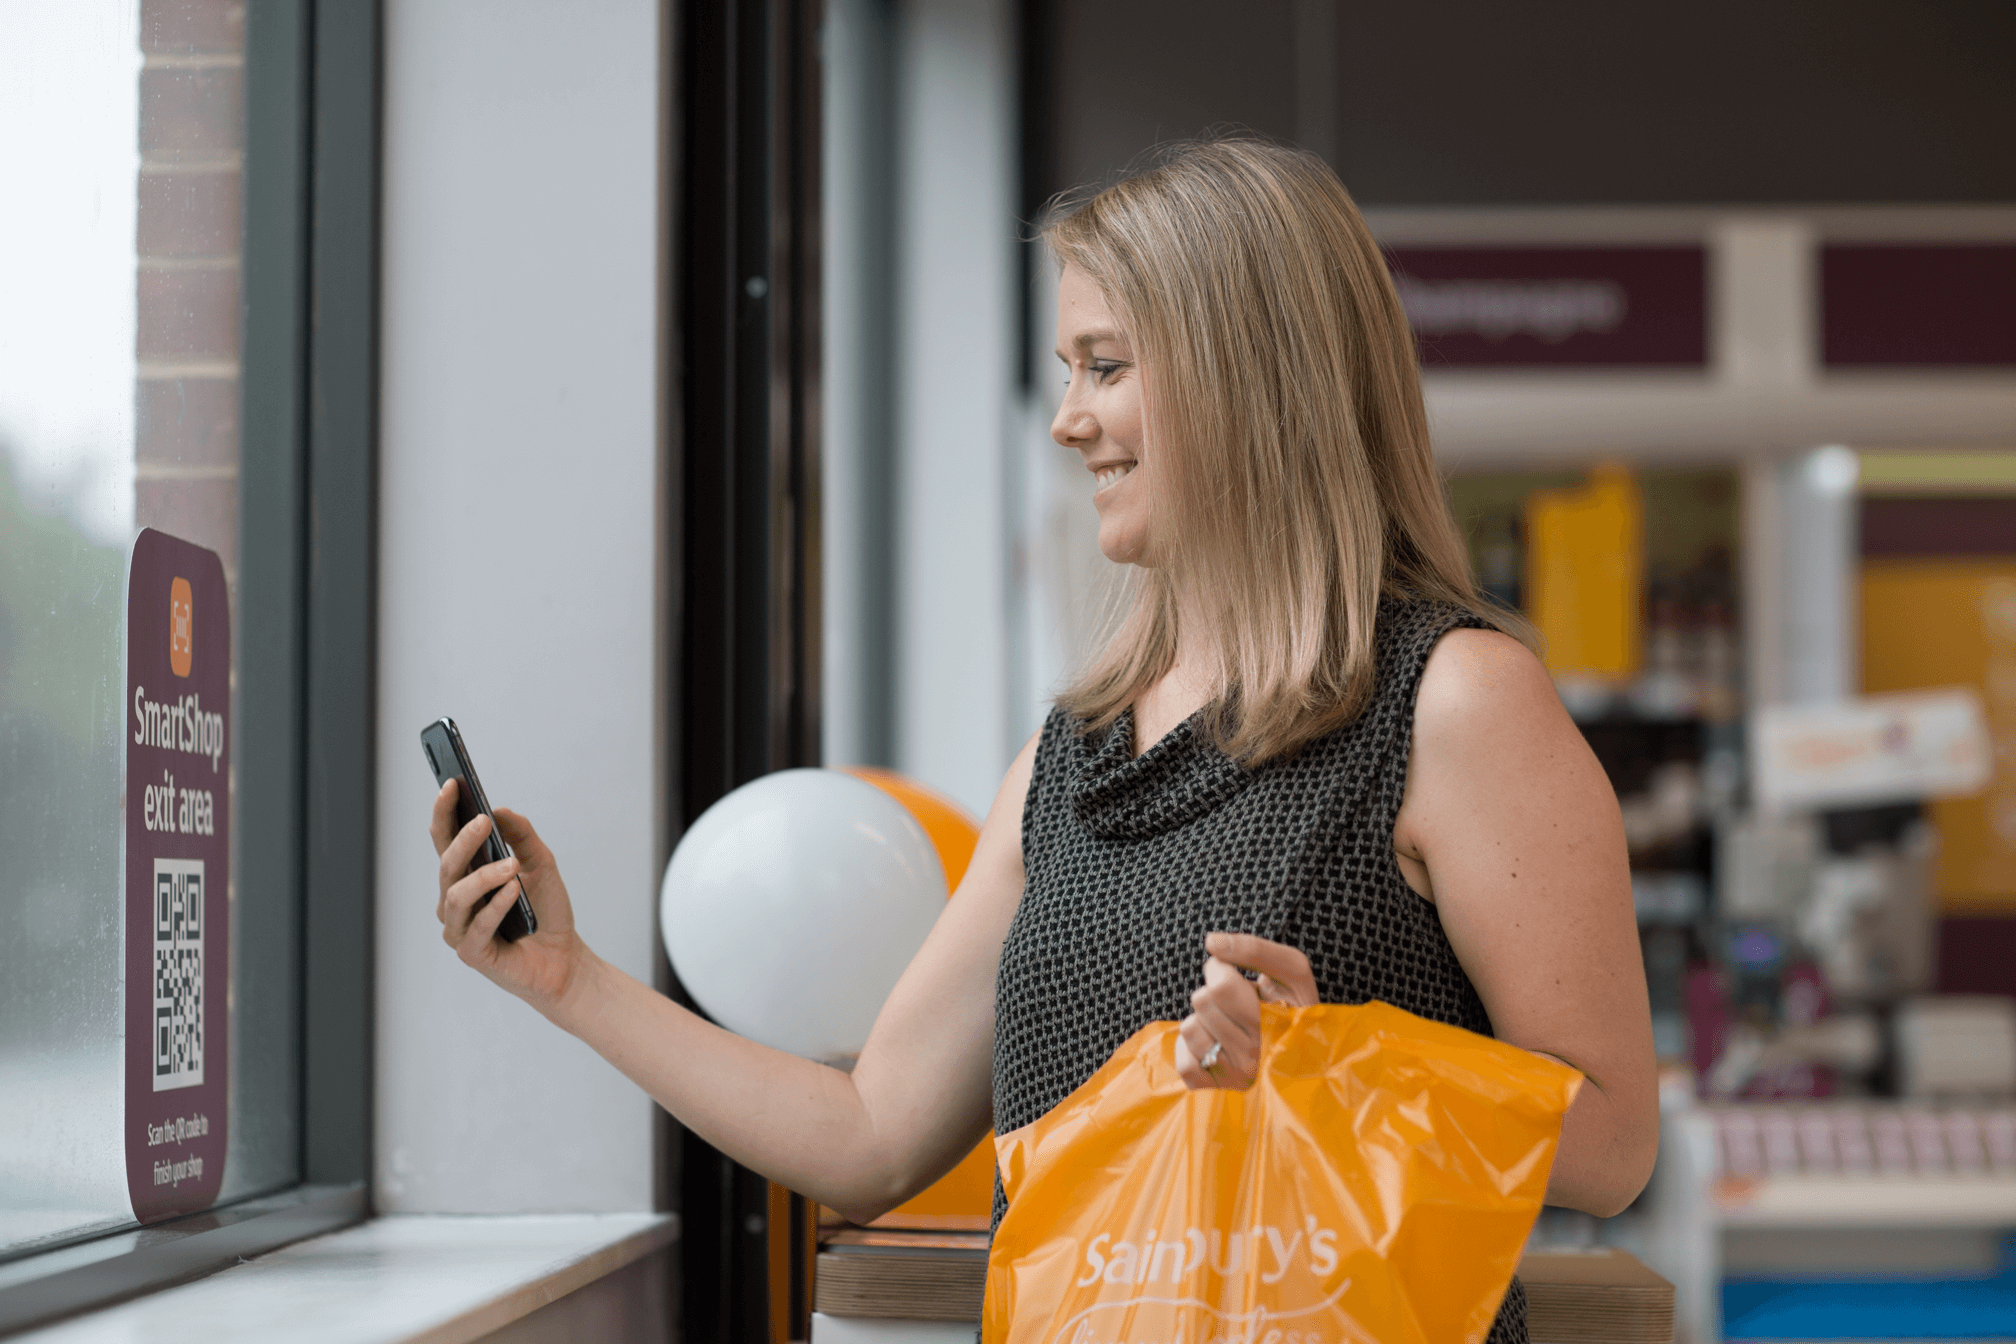 Sainsburys-SmartShop-scan-pay-&-go-trial--customer-scanning-Exit-QR-code-to-finish-shop